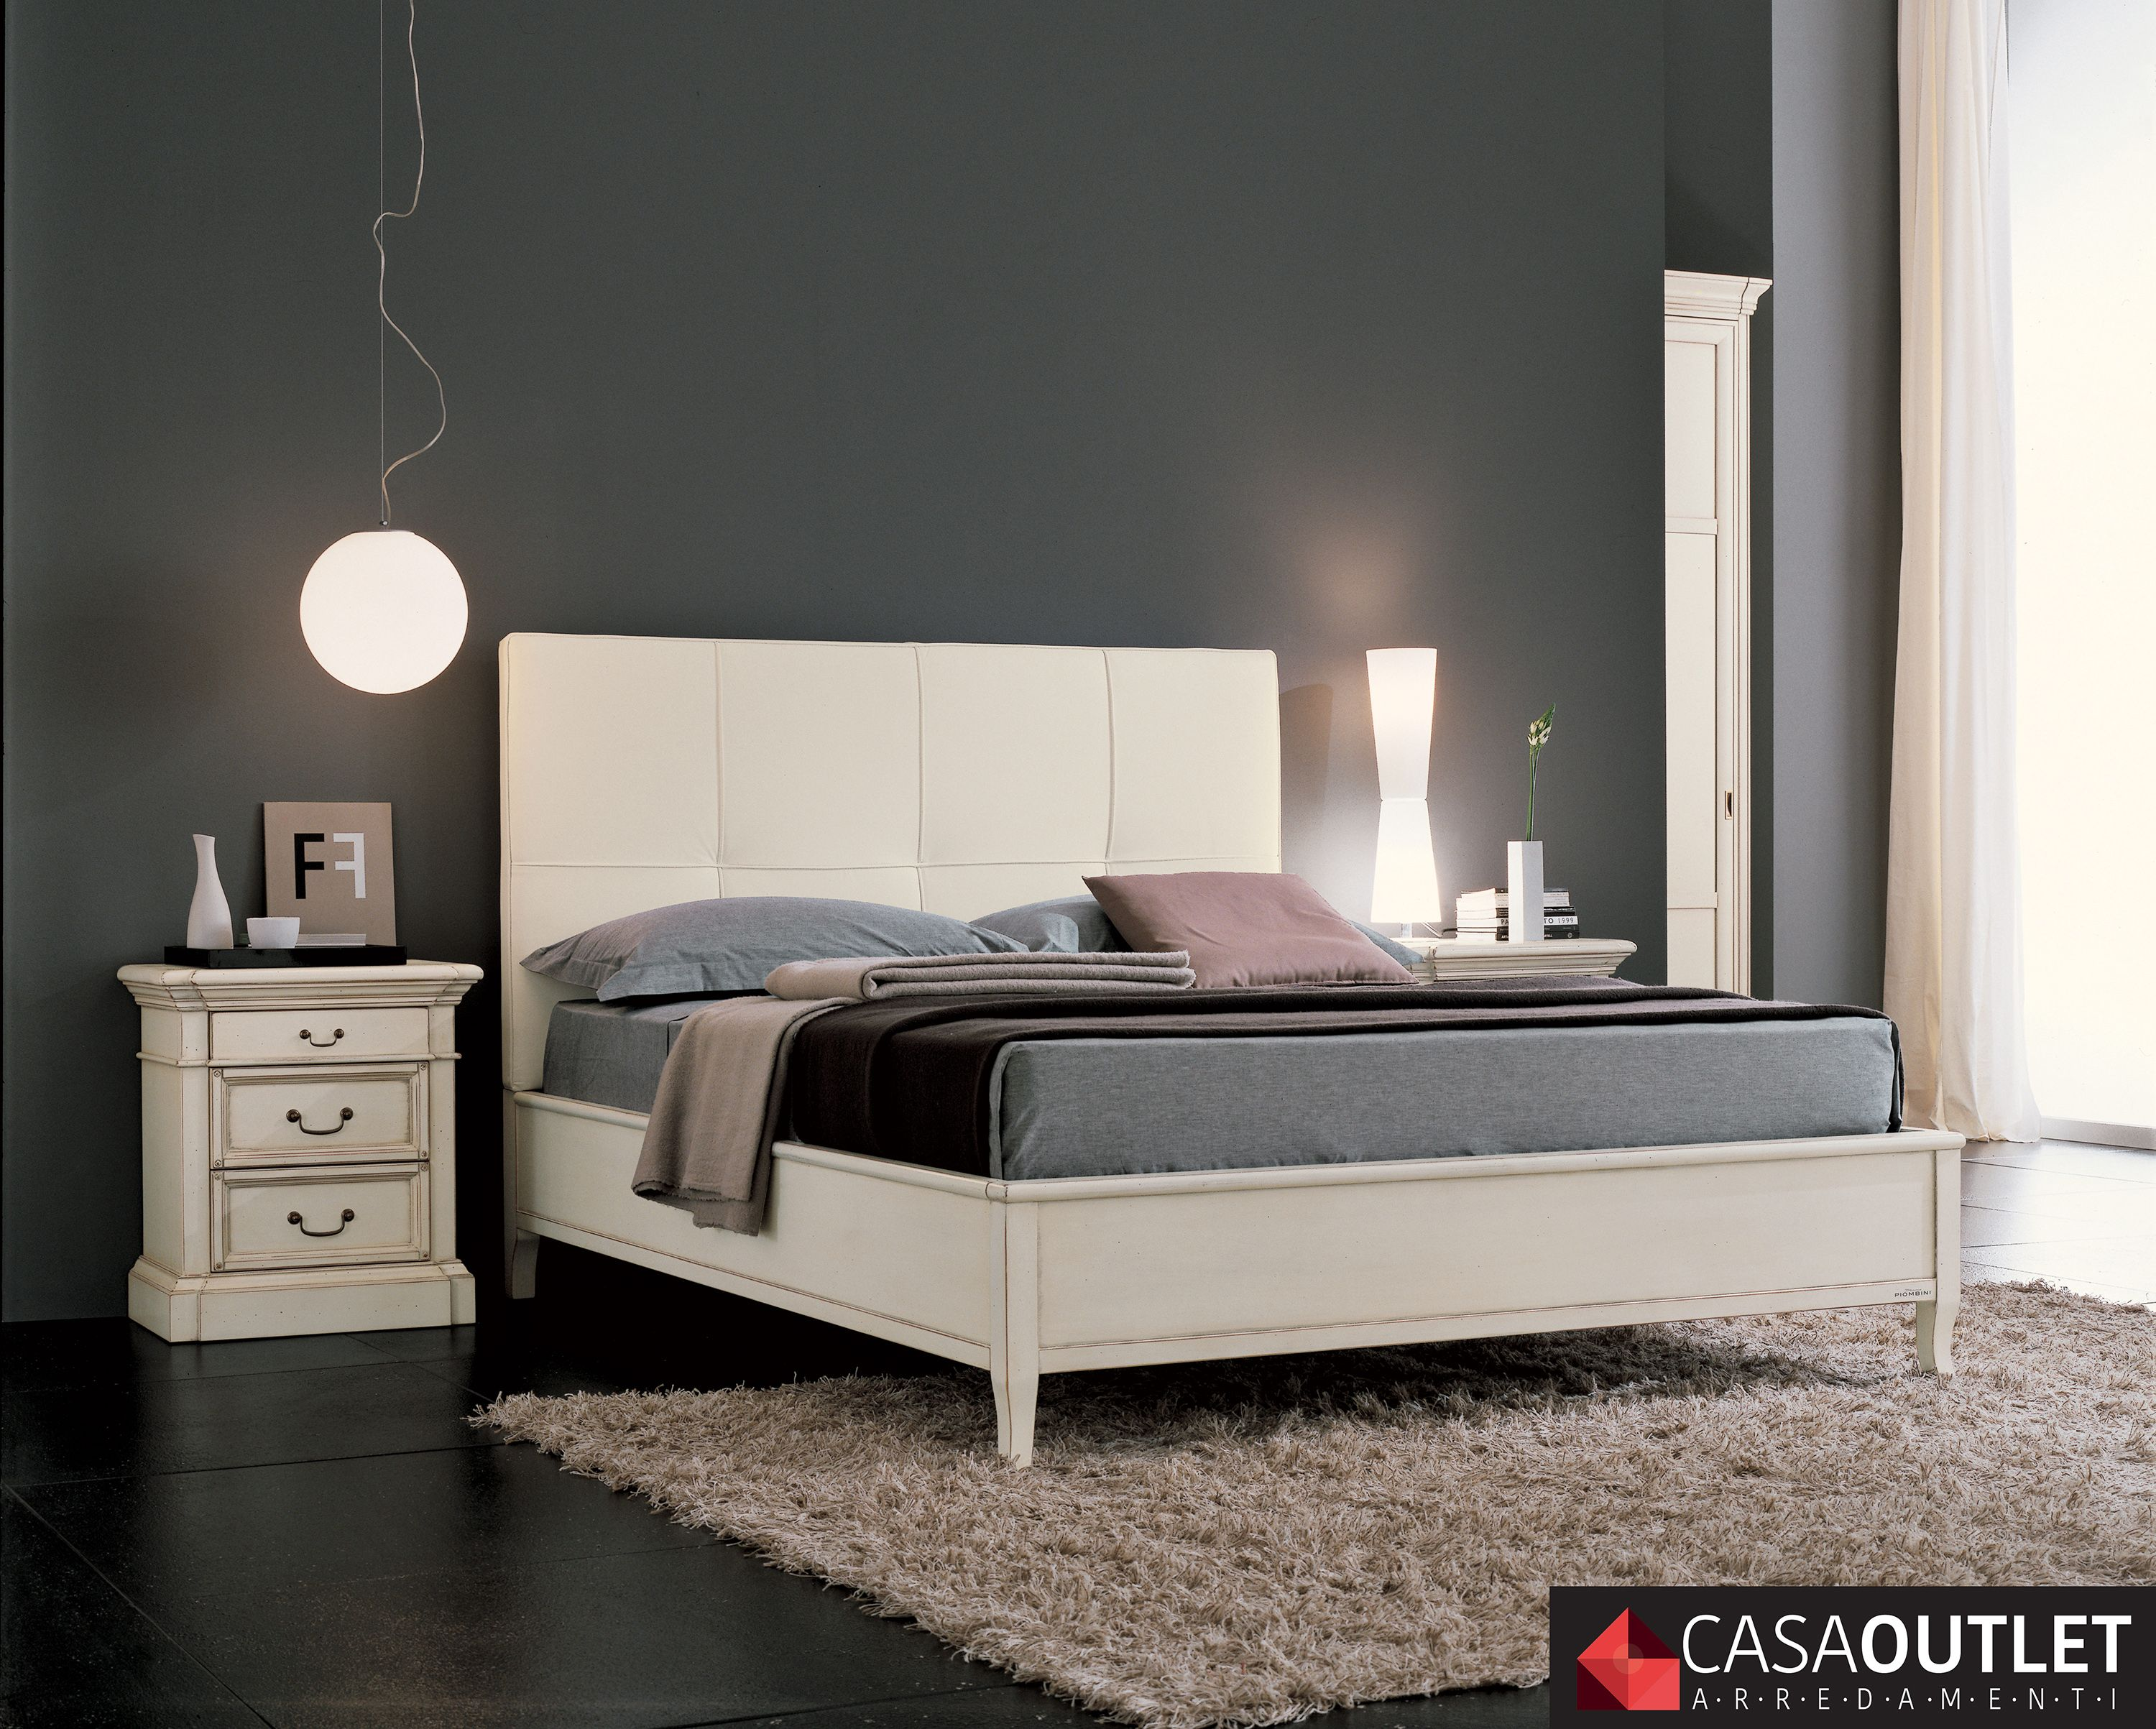 Emejing Bruno Piombini Outlet Pictures - Design & Ideas 2018 ...